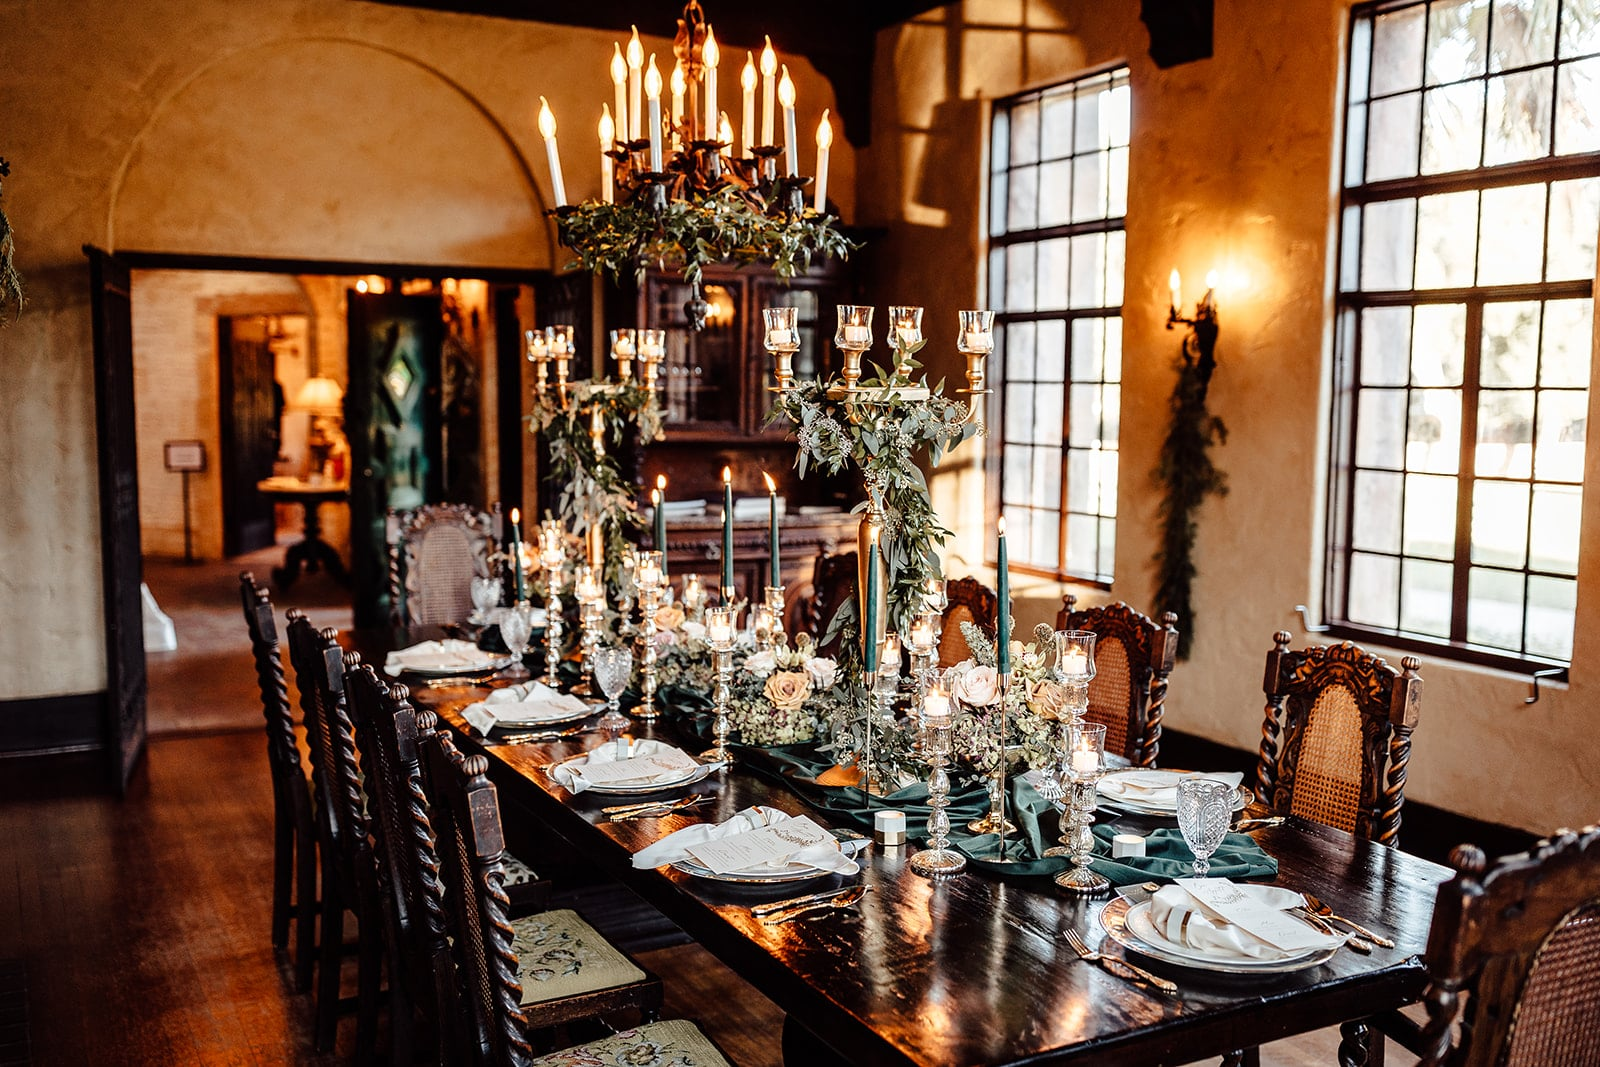 historic room with old wooden table complete with place settings for wedding reception and table with elegant emerald gold wedding decor including candelabras with garland and other accents of the colors